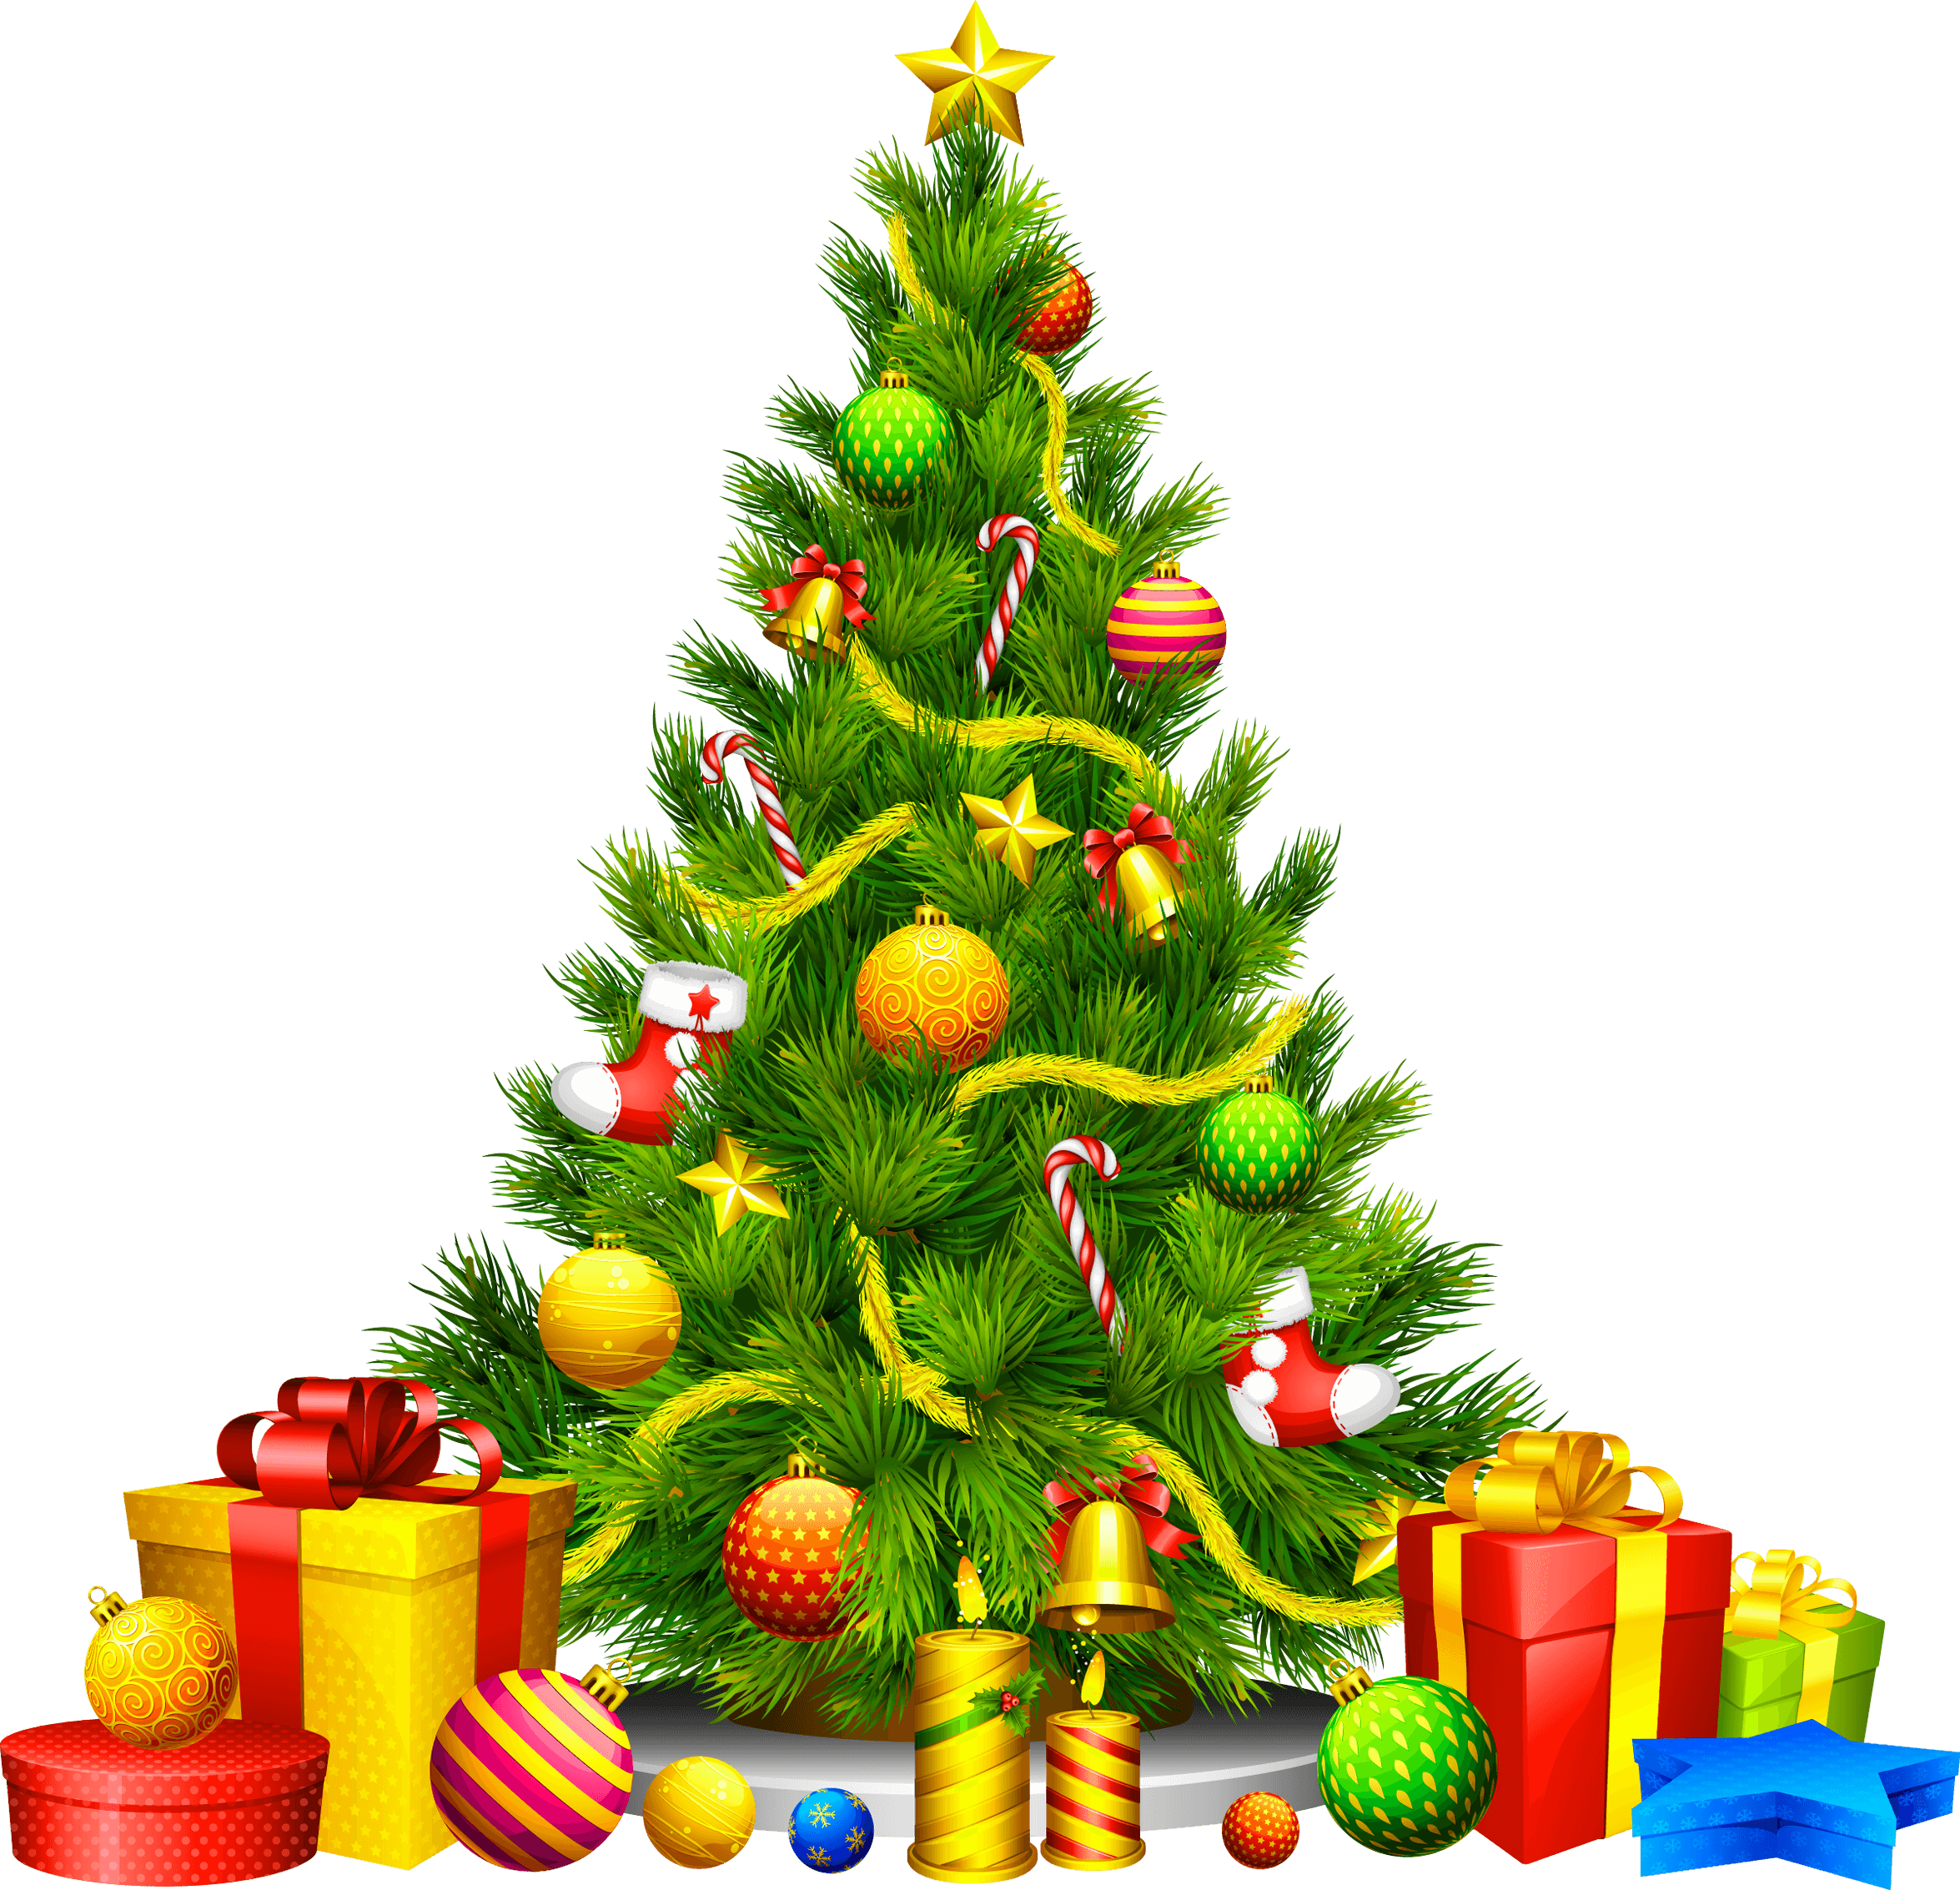 Christmas cartoon png. Gifts fir tree image